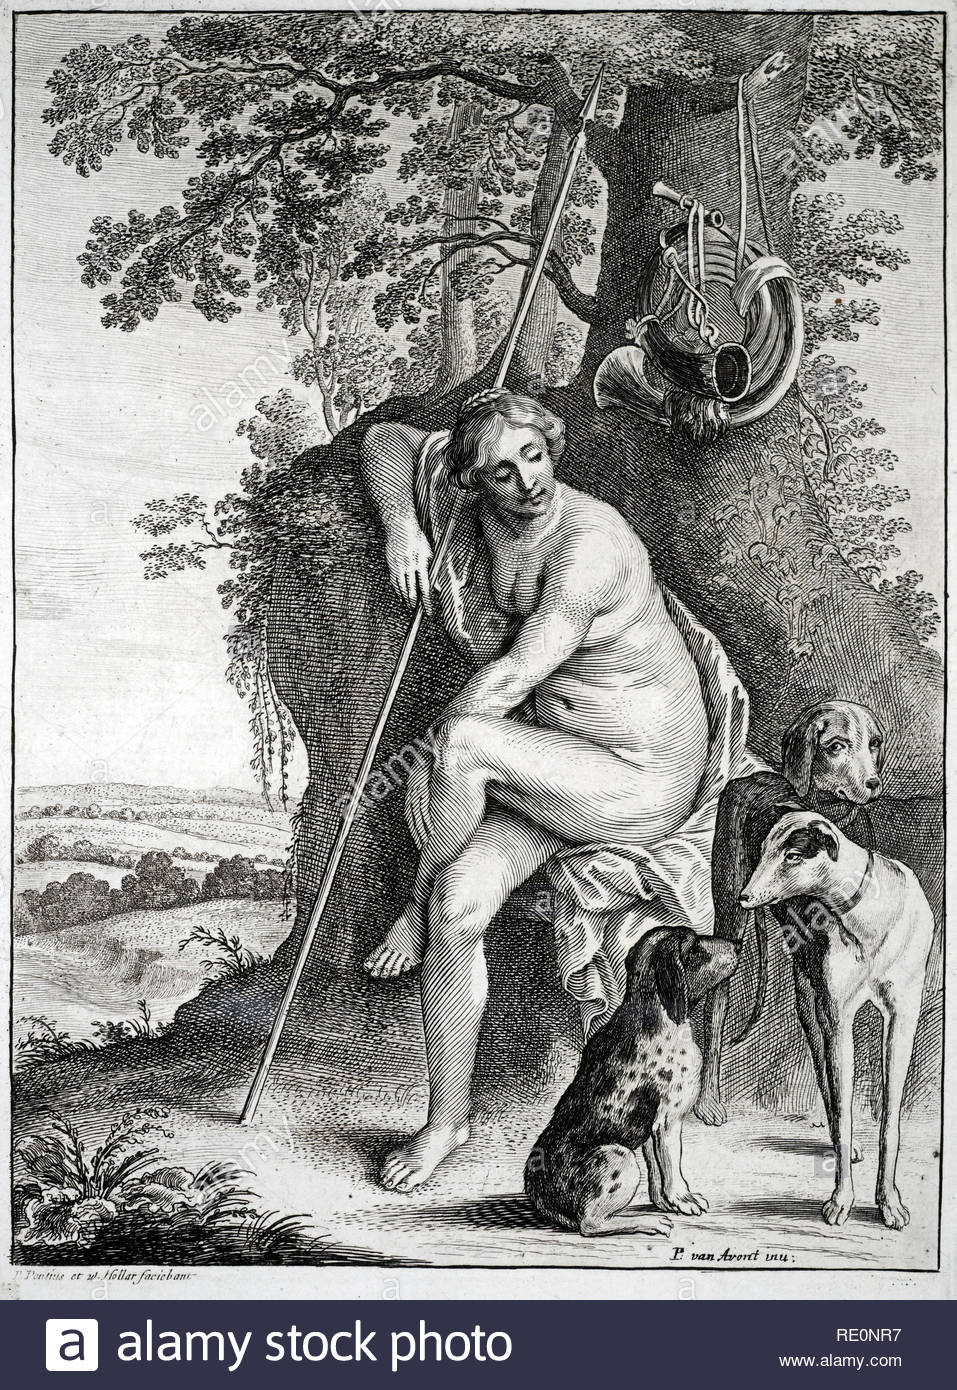 Seated figure of Diana the huntress,  etching by Bohemian etcher Wenceslaus Hollar from 1600s. After Pieter van Avont. - Stock Image